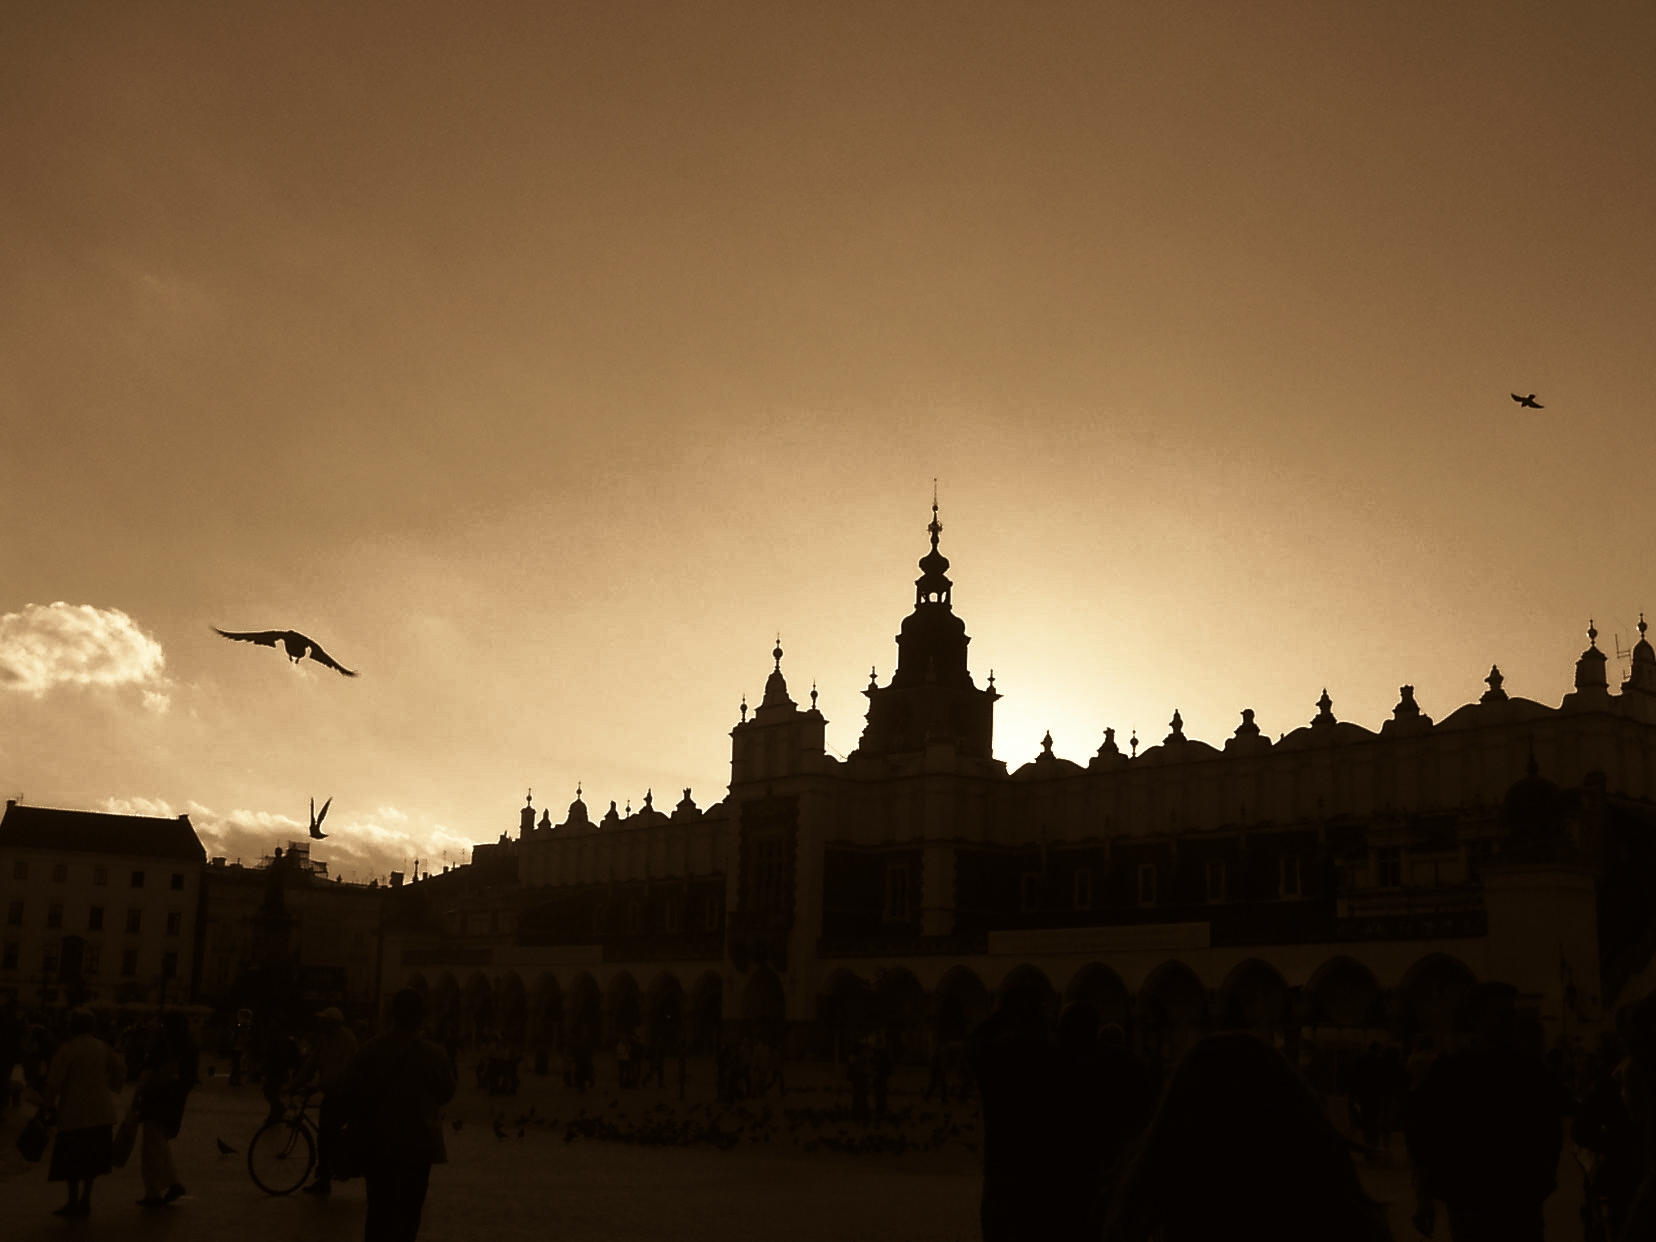 Cracow 2 by malaga4